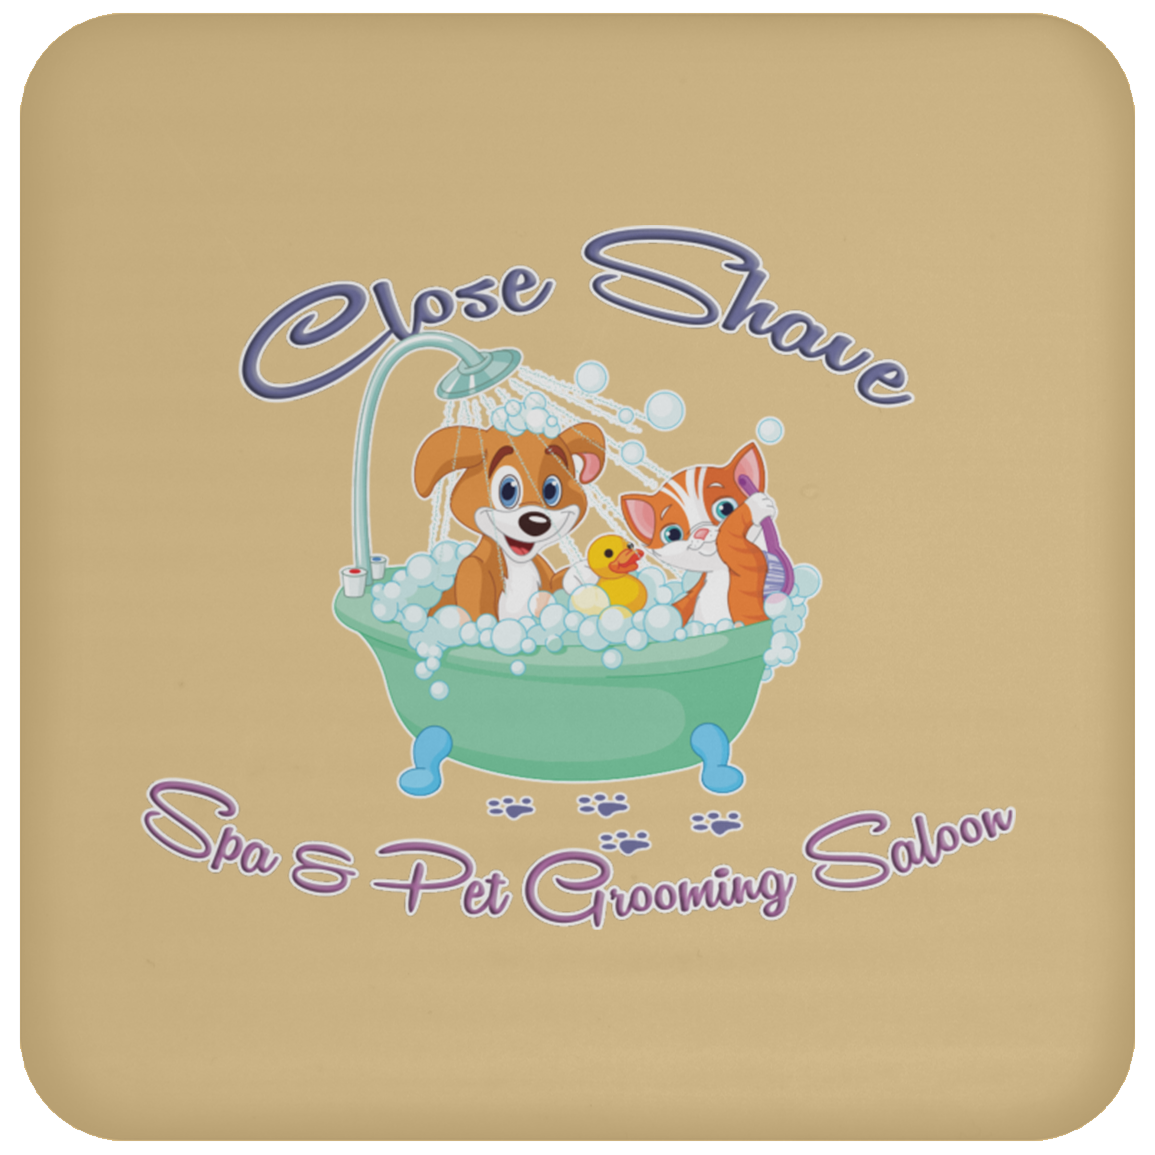 Close Shave Pet Grooming Coaster